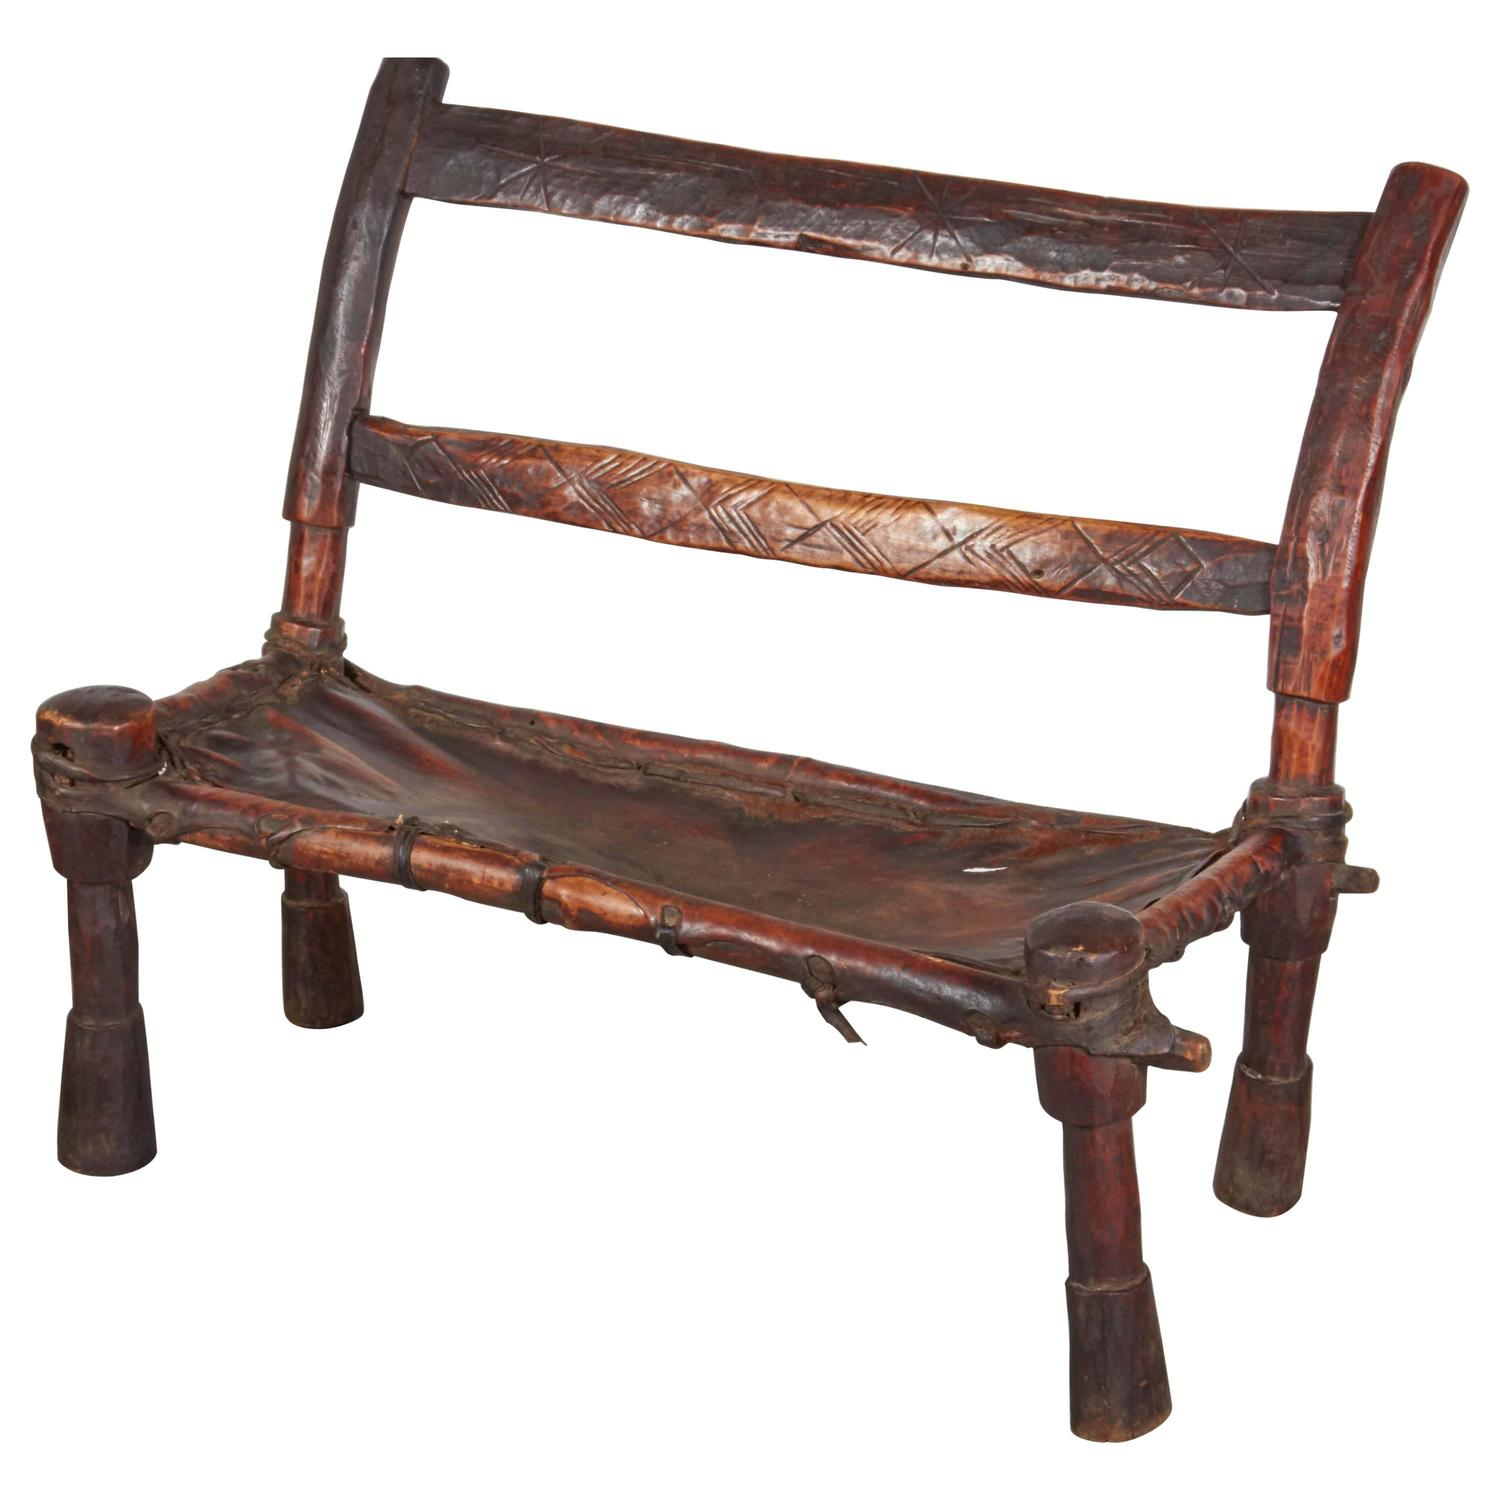 Antique Wood And Leather Bench With Great Patina And Clean Lines For Sale At 1stdibs